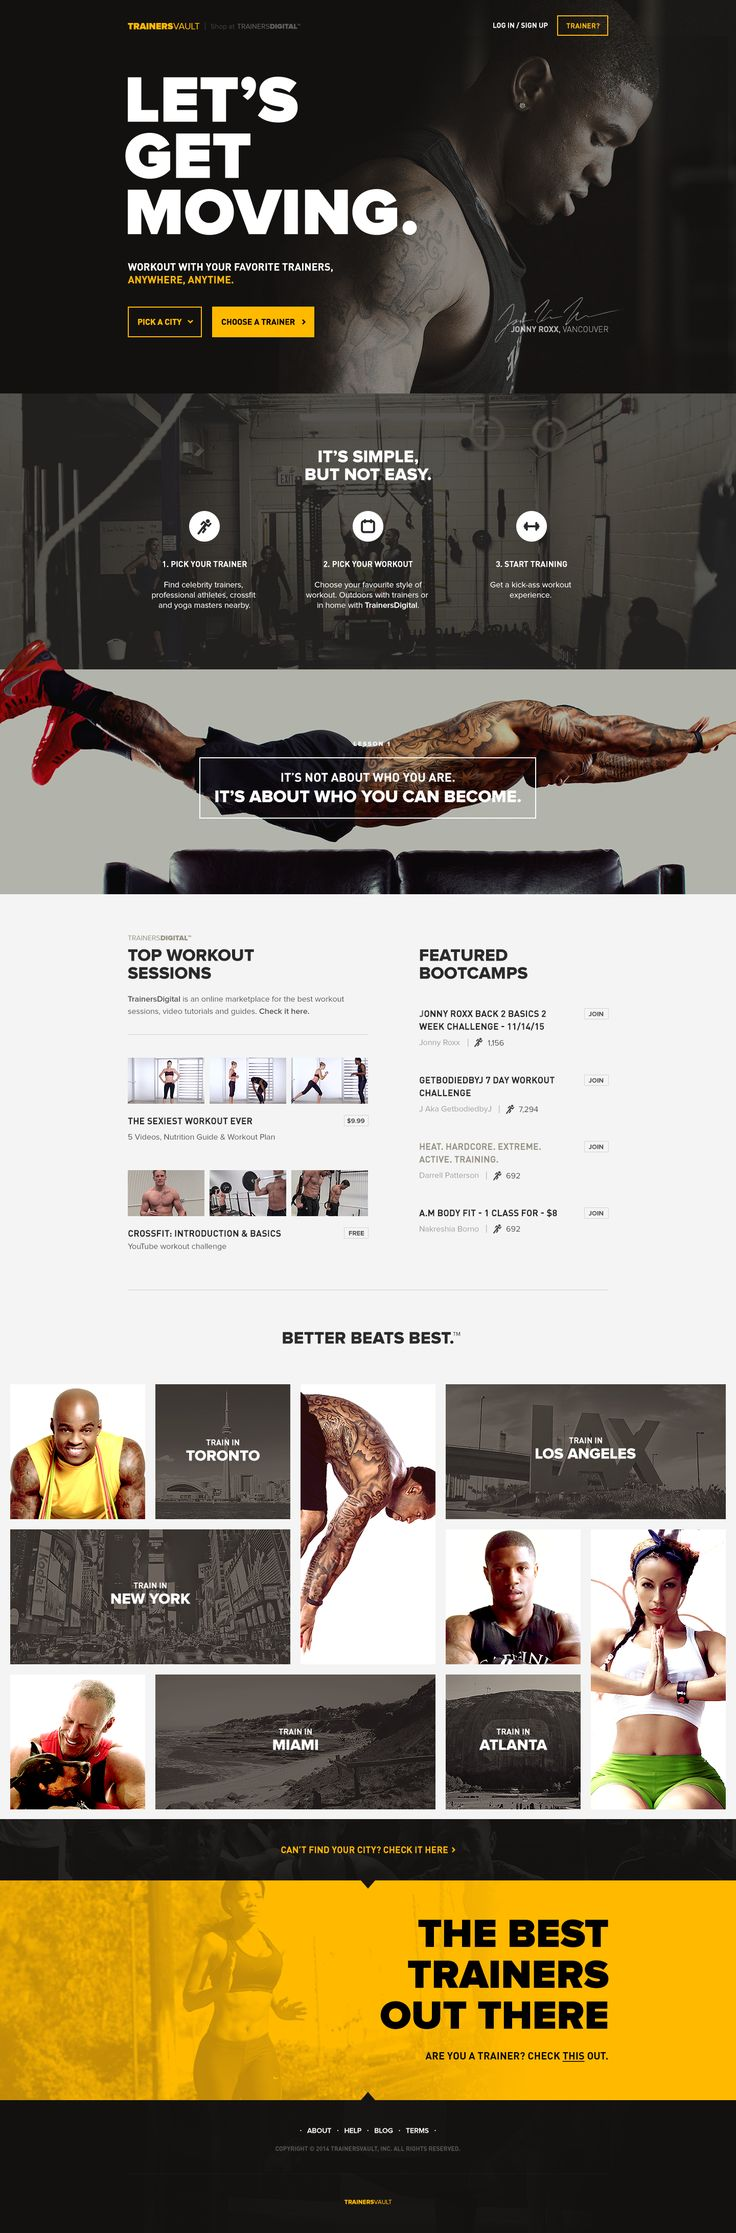 Web, flat, sporty, bold typography, traditional one page, call to action, buttons, web design